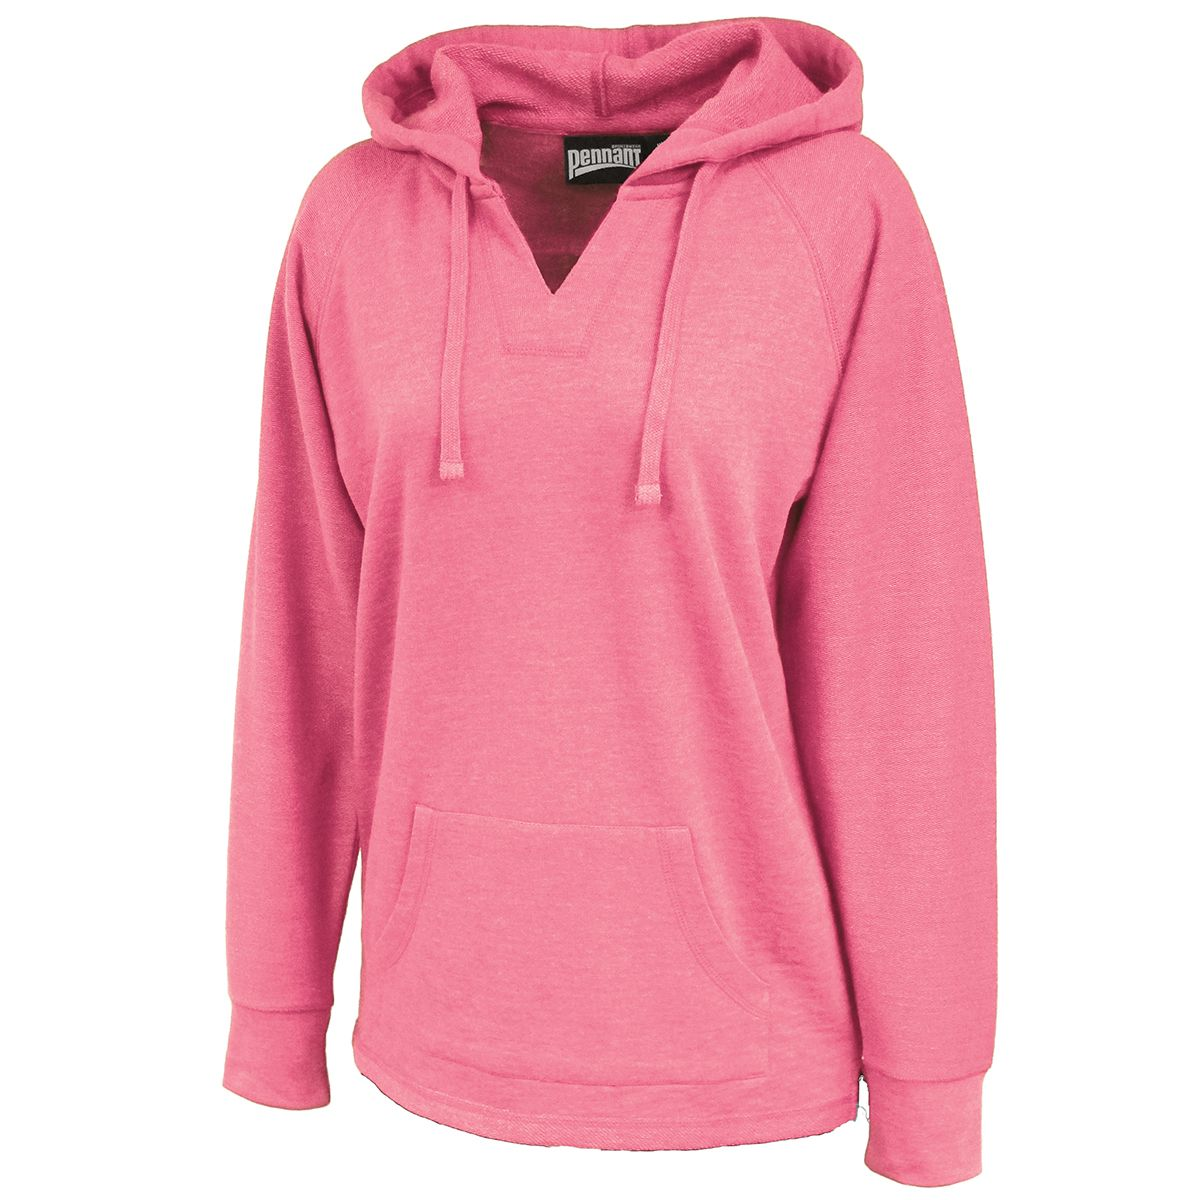 All Around Active, active clothing, fitness clothing, workout clothes, workout clothing, fitness apparel, workout apparel, active apparel, custom activewear, customizable activewear, fashionable activewear, Golf Clothing